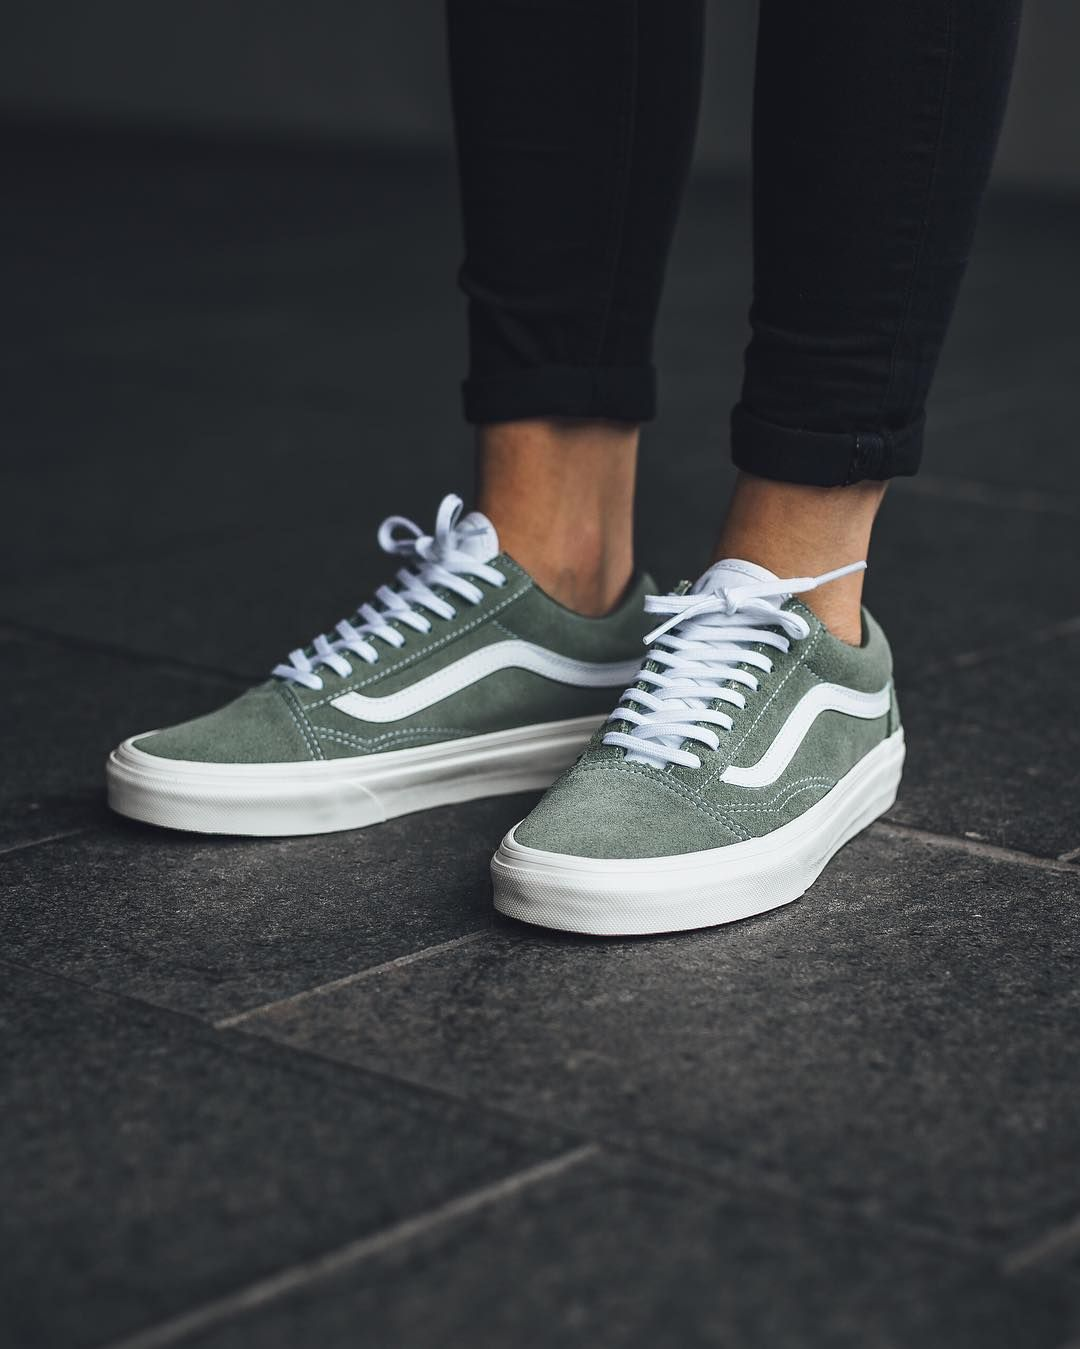 2d47ad5423 VANS Old Skool